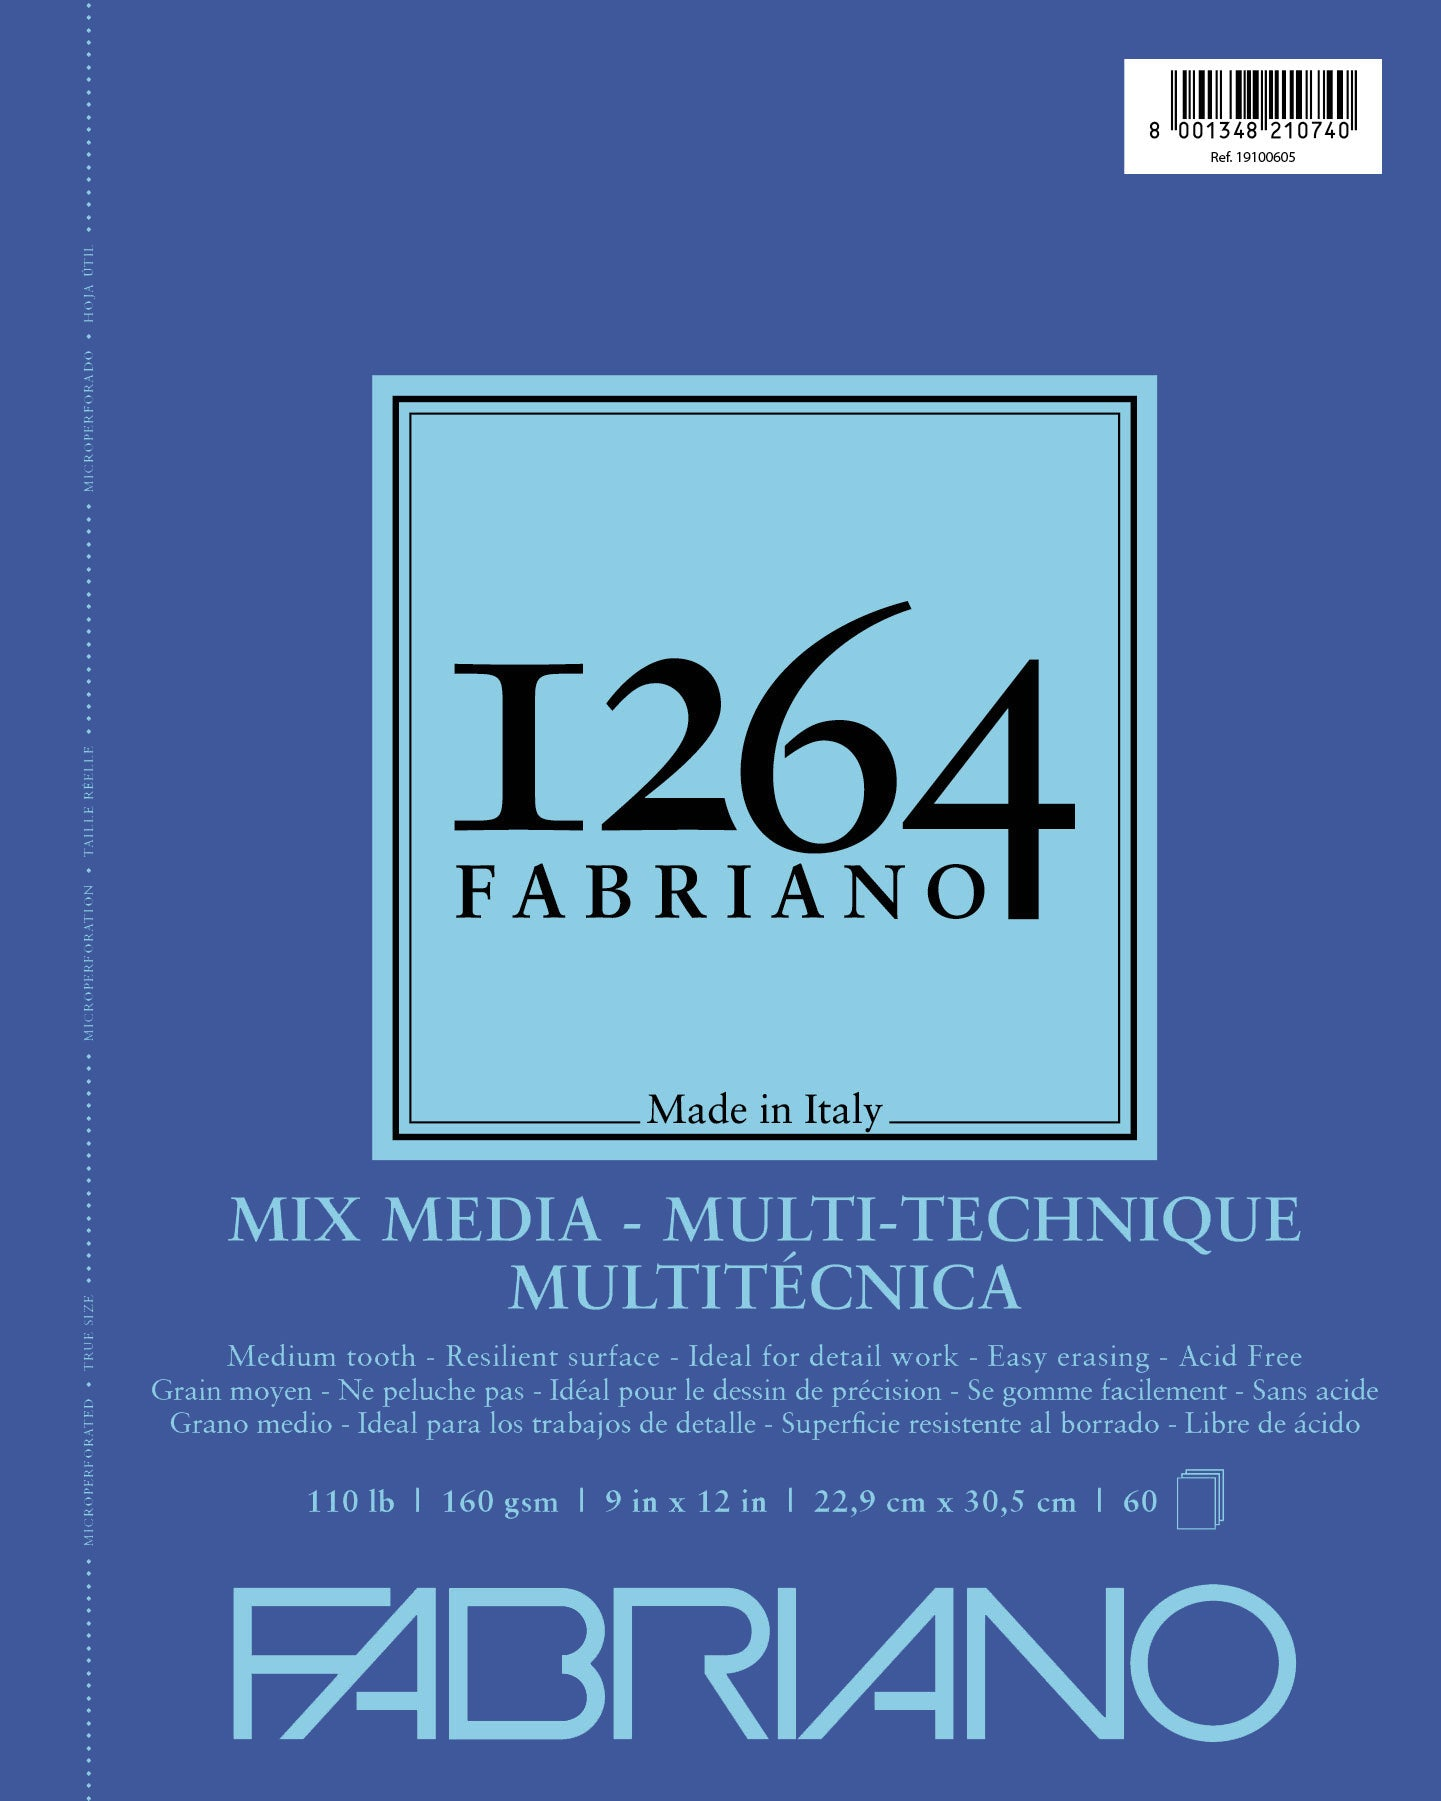 Fabriano 1264 Mixed Media Pad